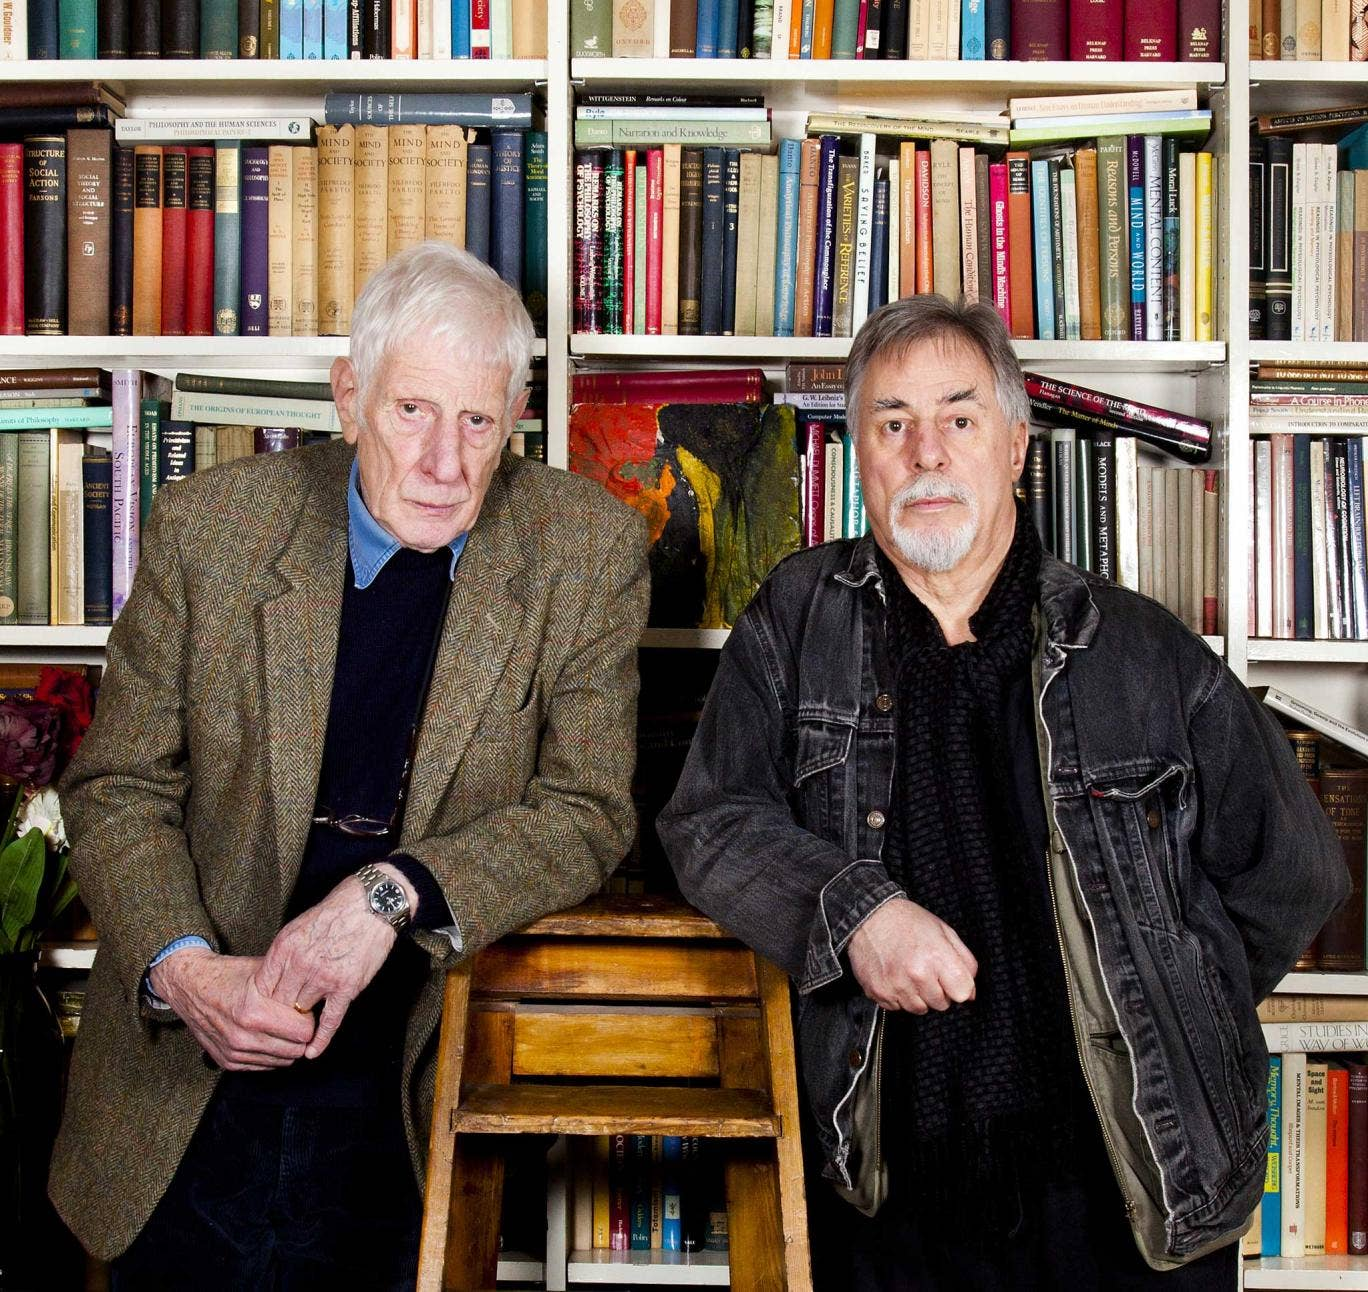 Miller (left) says of Rutter: 'He's straightforward with no silly arty-crafty pretensions.'